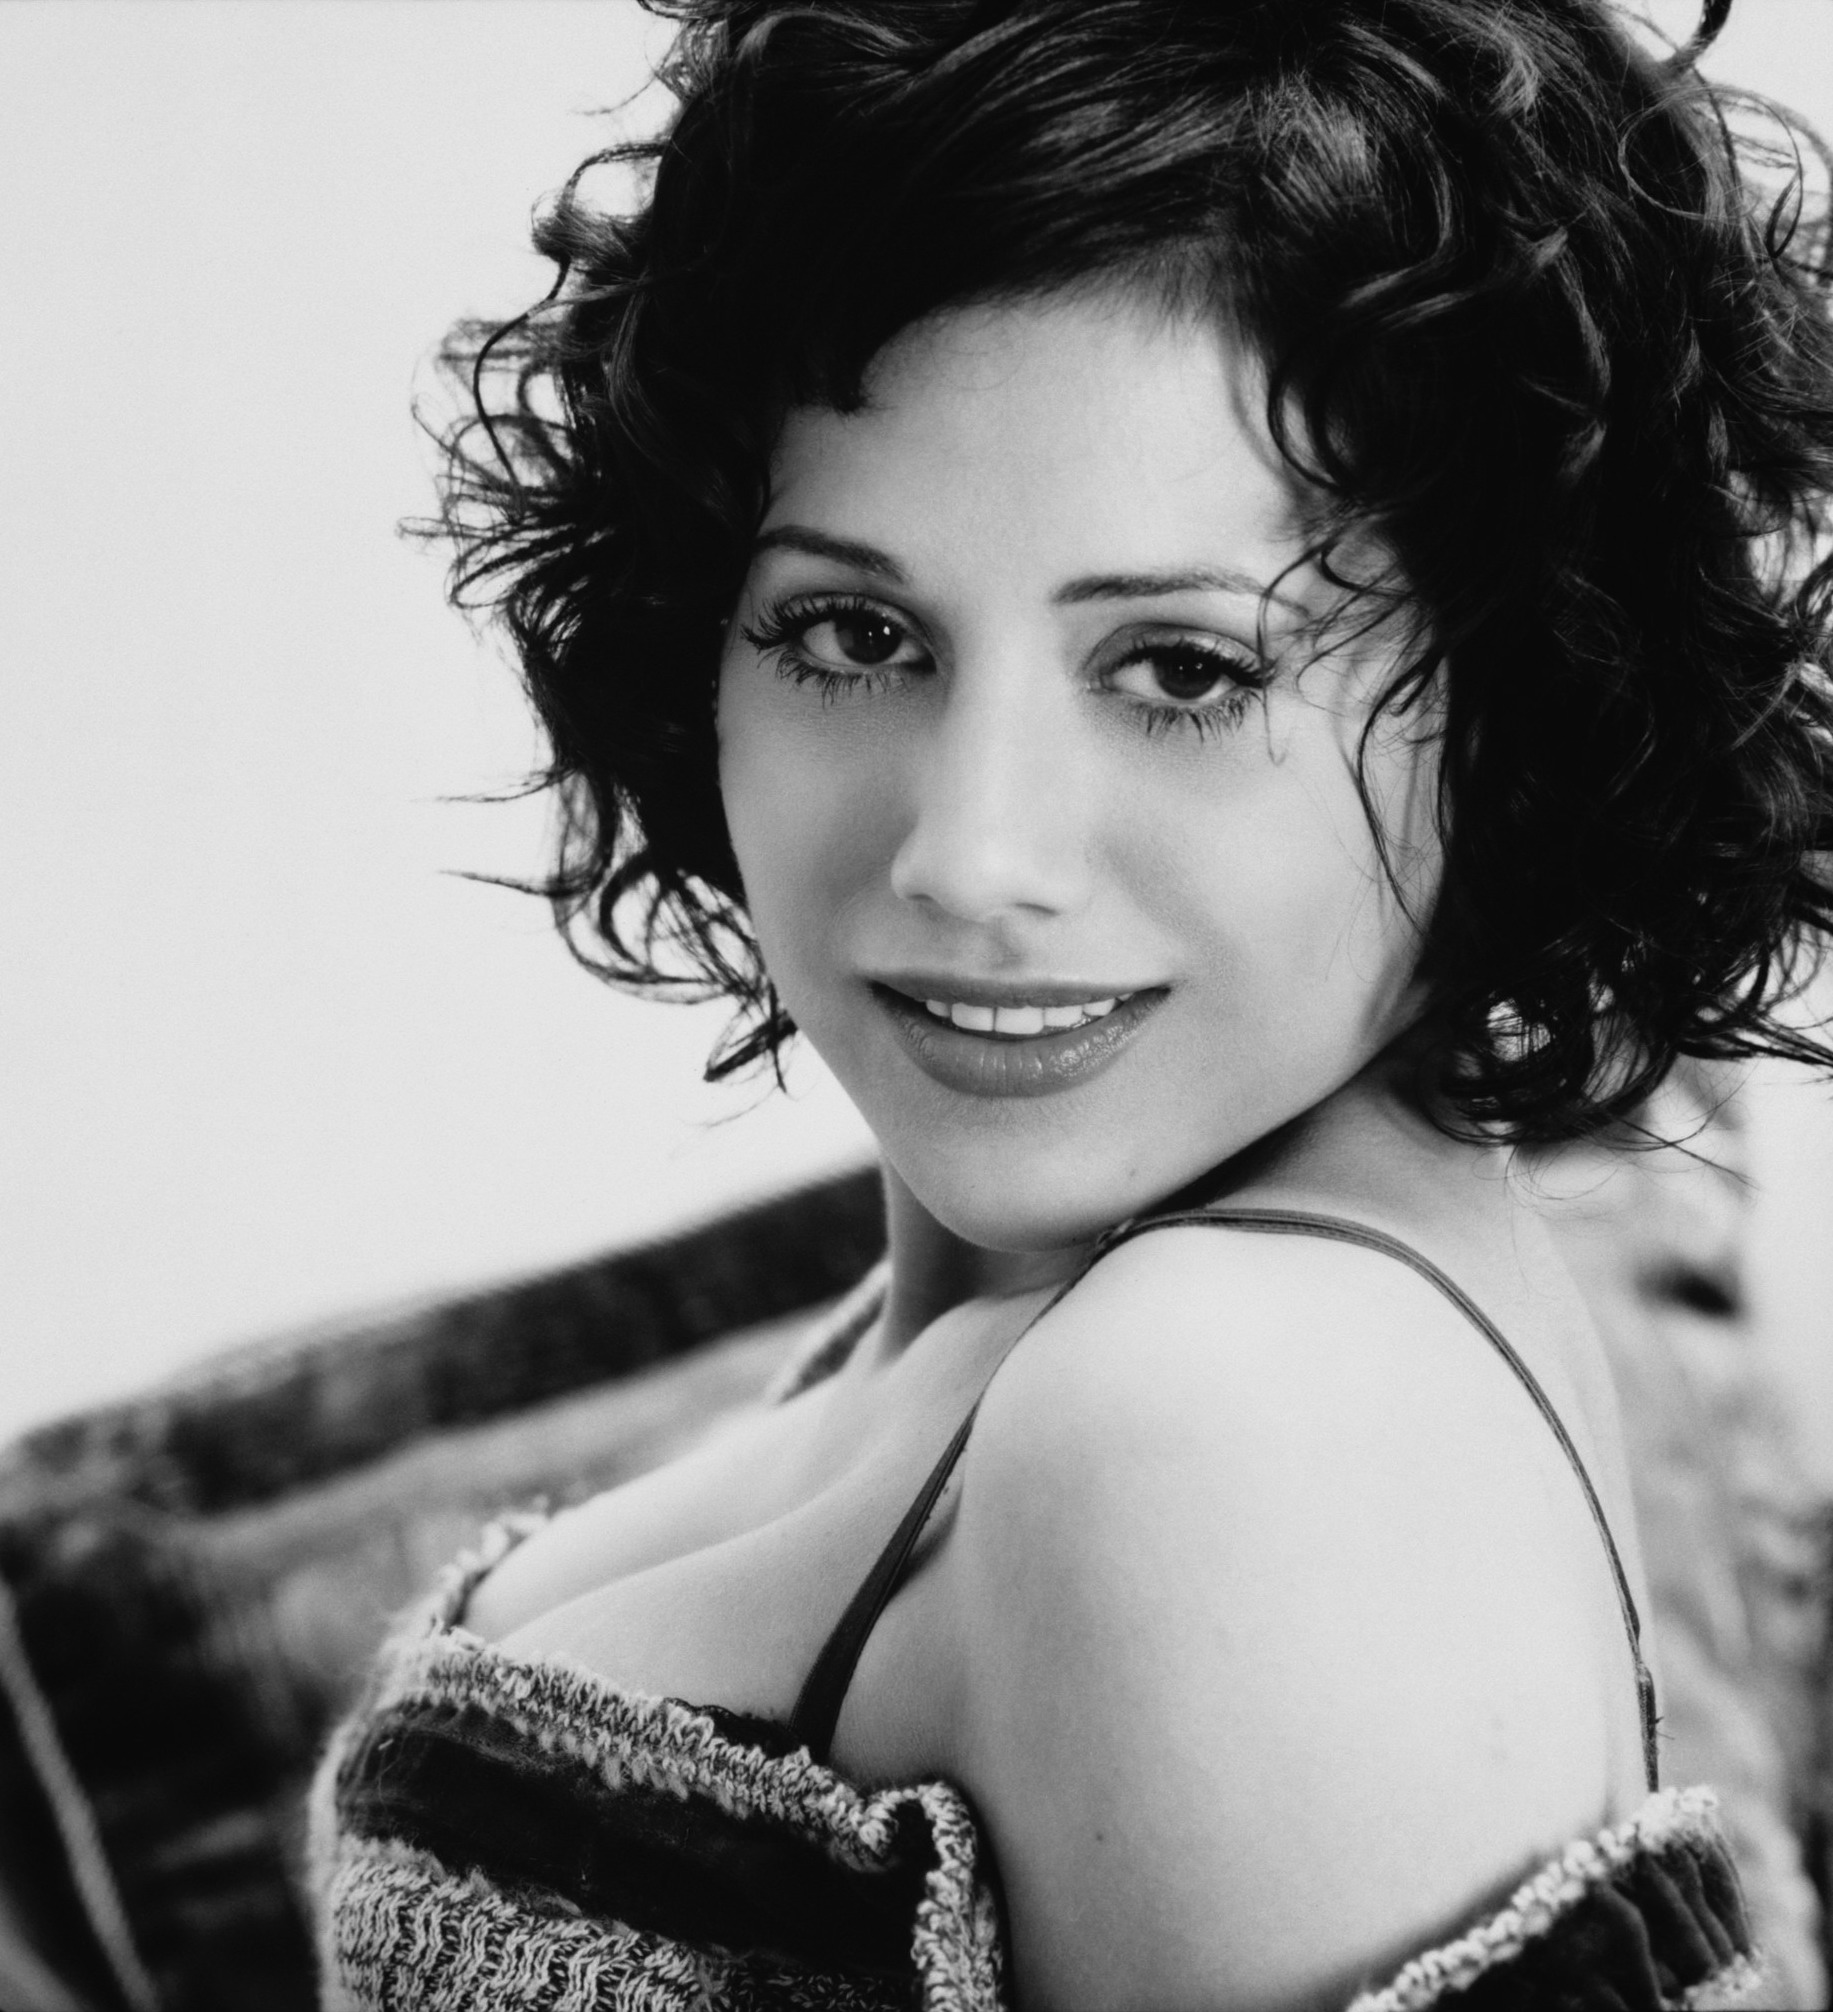 03756_celebutopia_Brittany_Murphy_Isabel_Snyder_09_123_37lo.jpg